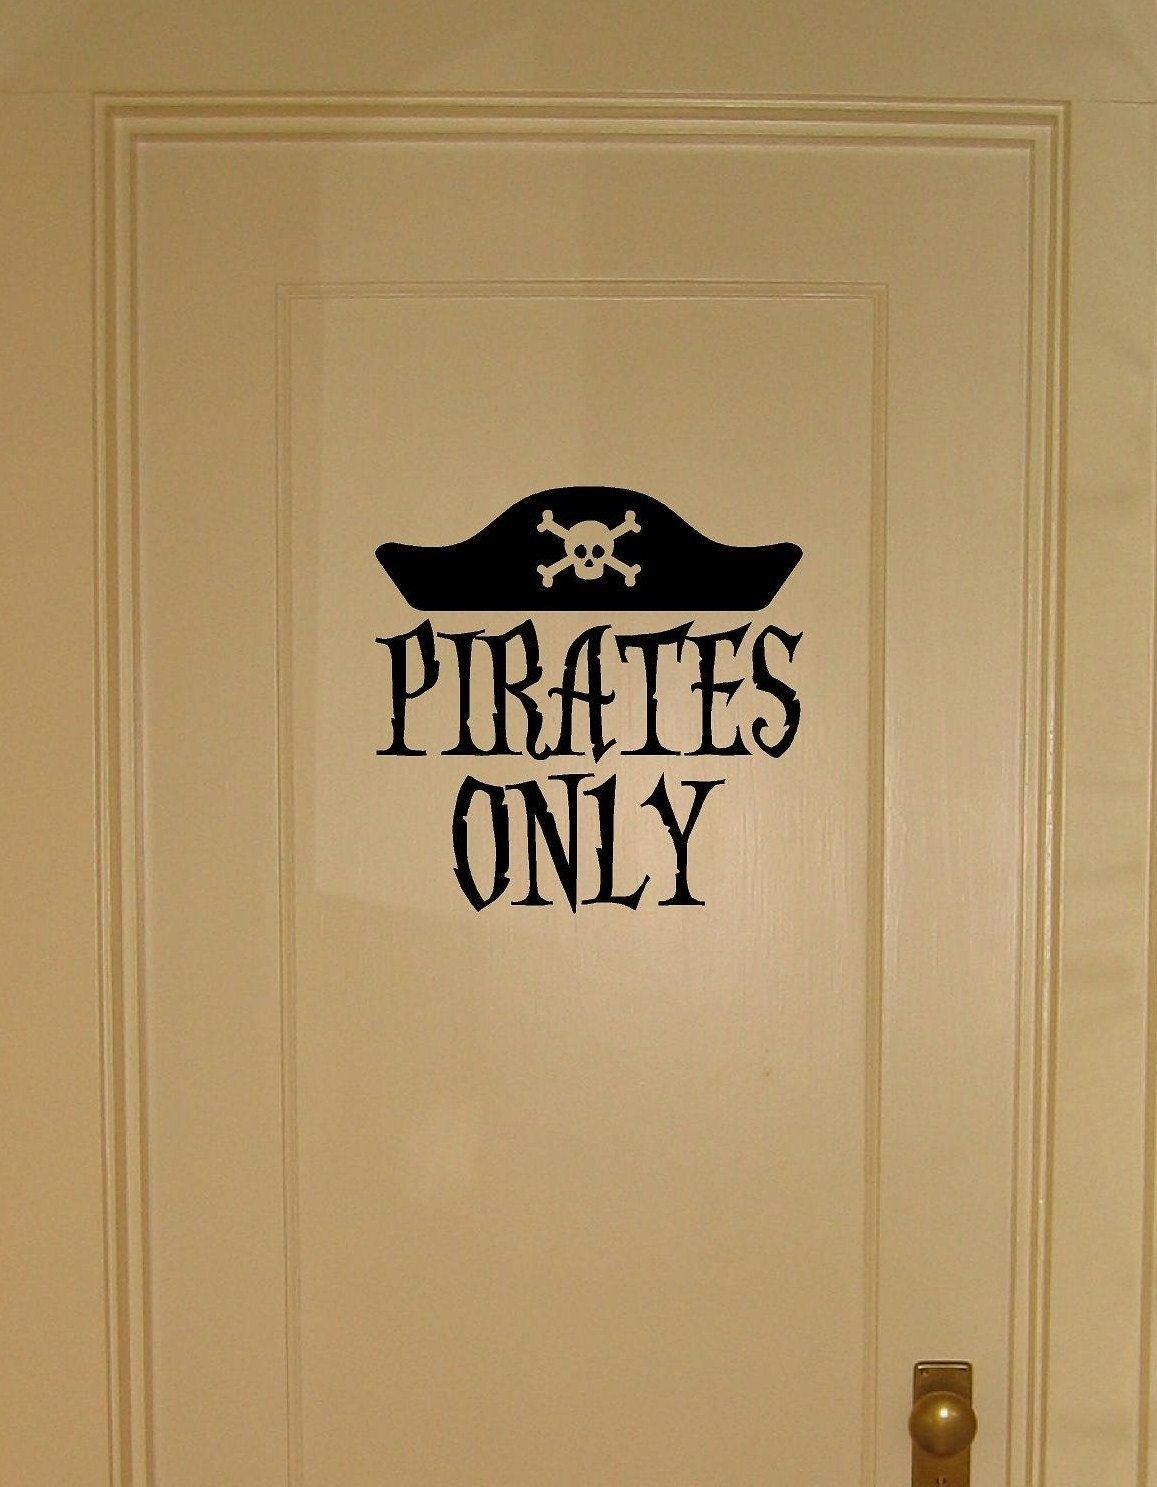 Best Pirates Only Vinyl Wall Decal For Bedroom Door Or Wall Becks Room Wall Decals For Bedroom With Pictures